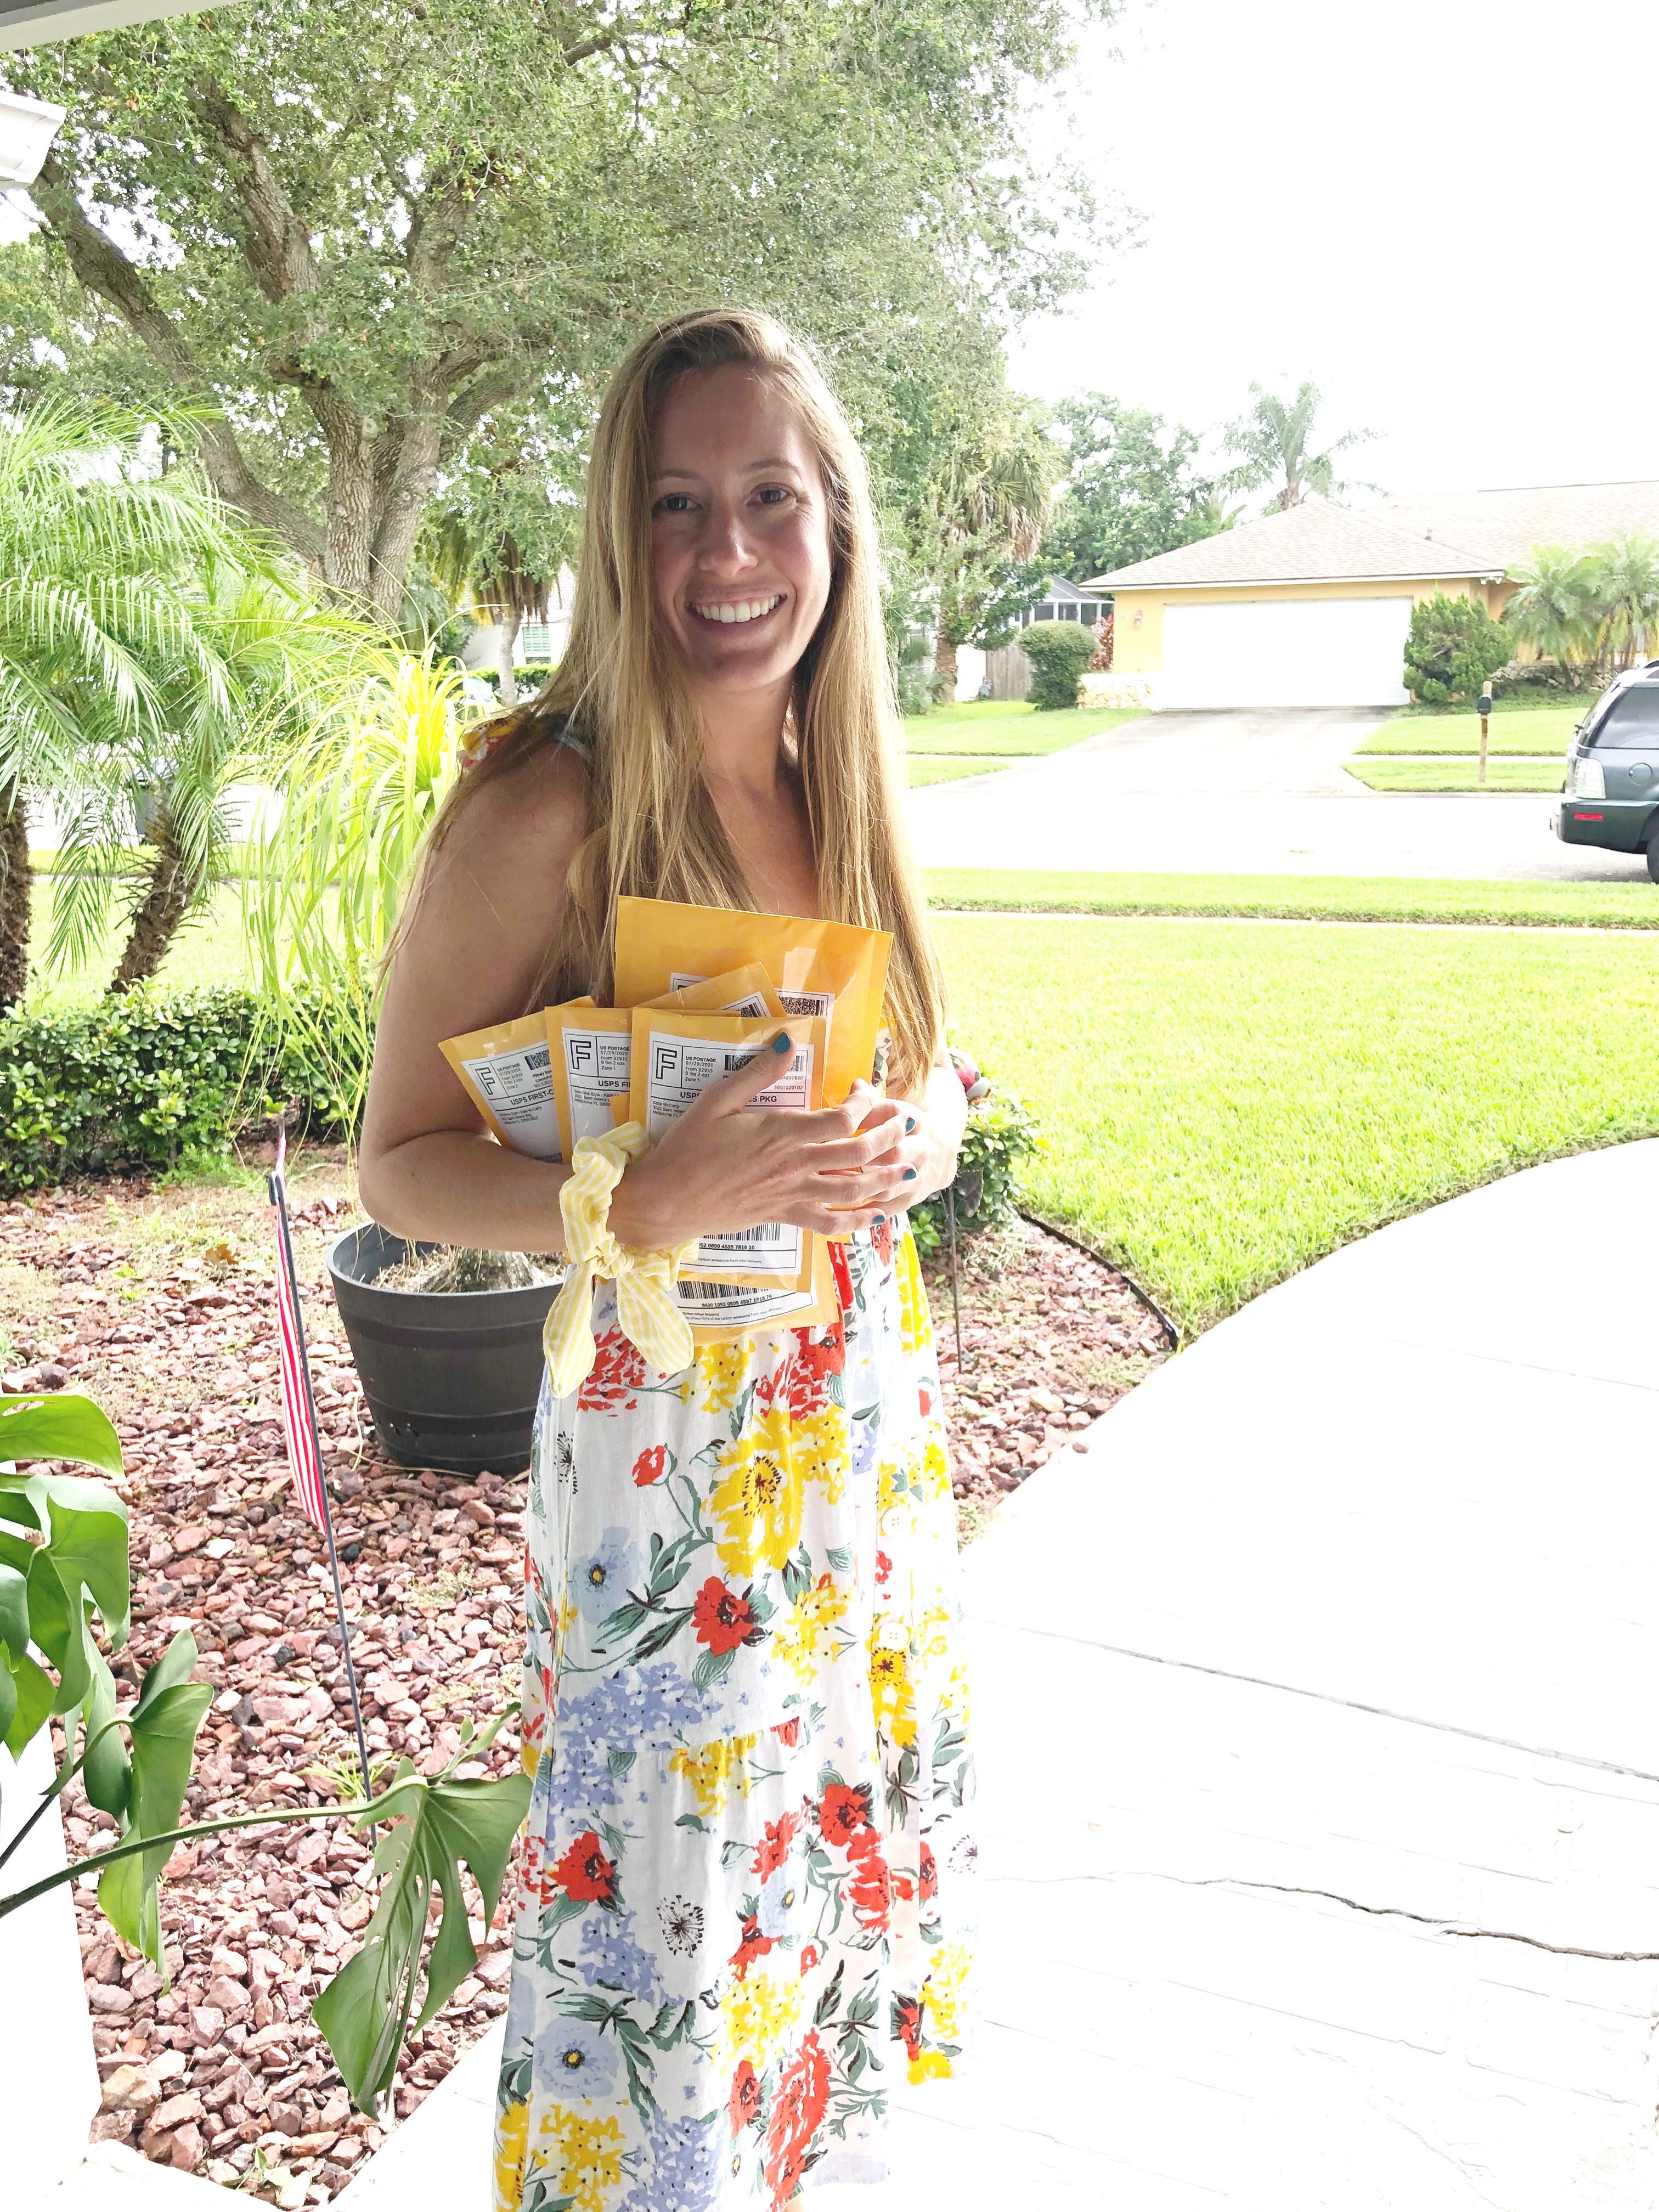 woman wearing a floral dress and holding packages for working full time and running a small business